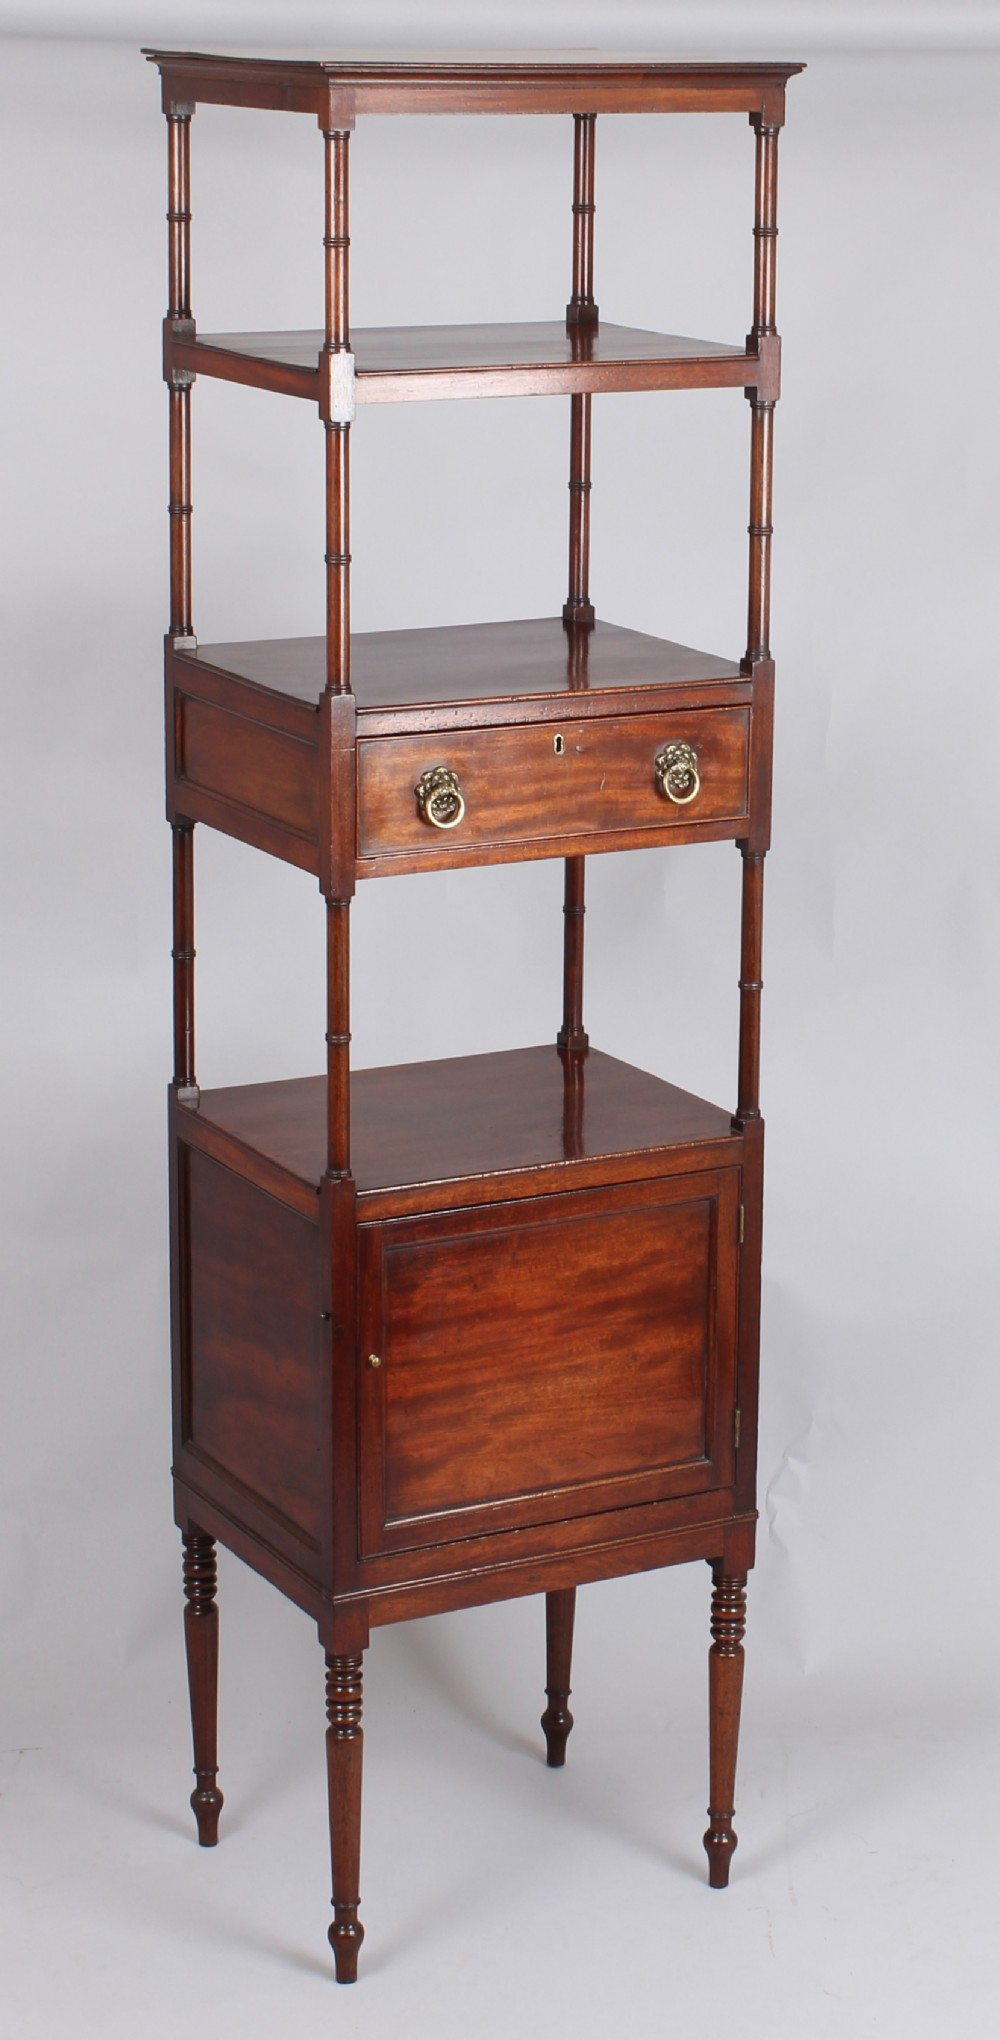 george iii period mahogany tall whatnot with four shelves